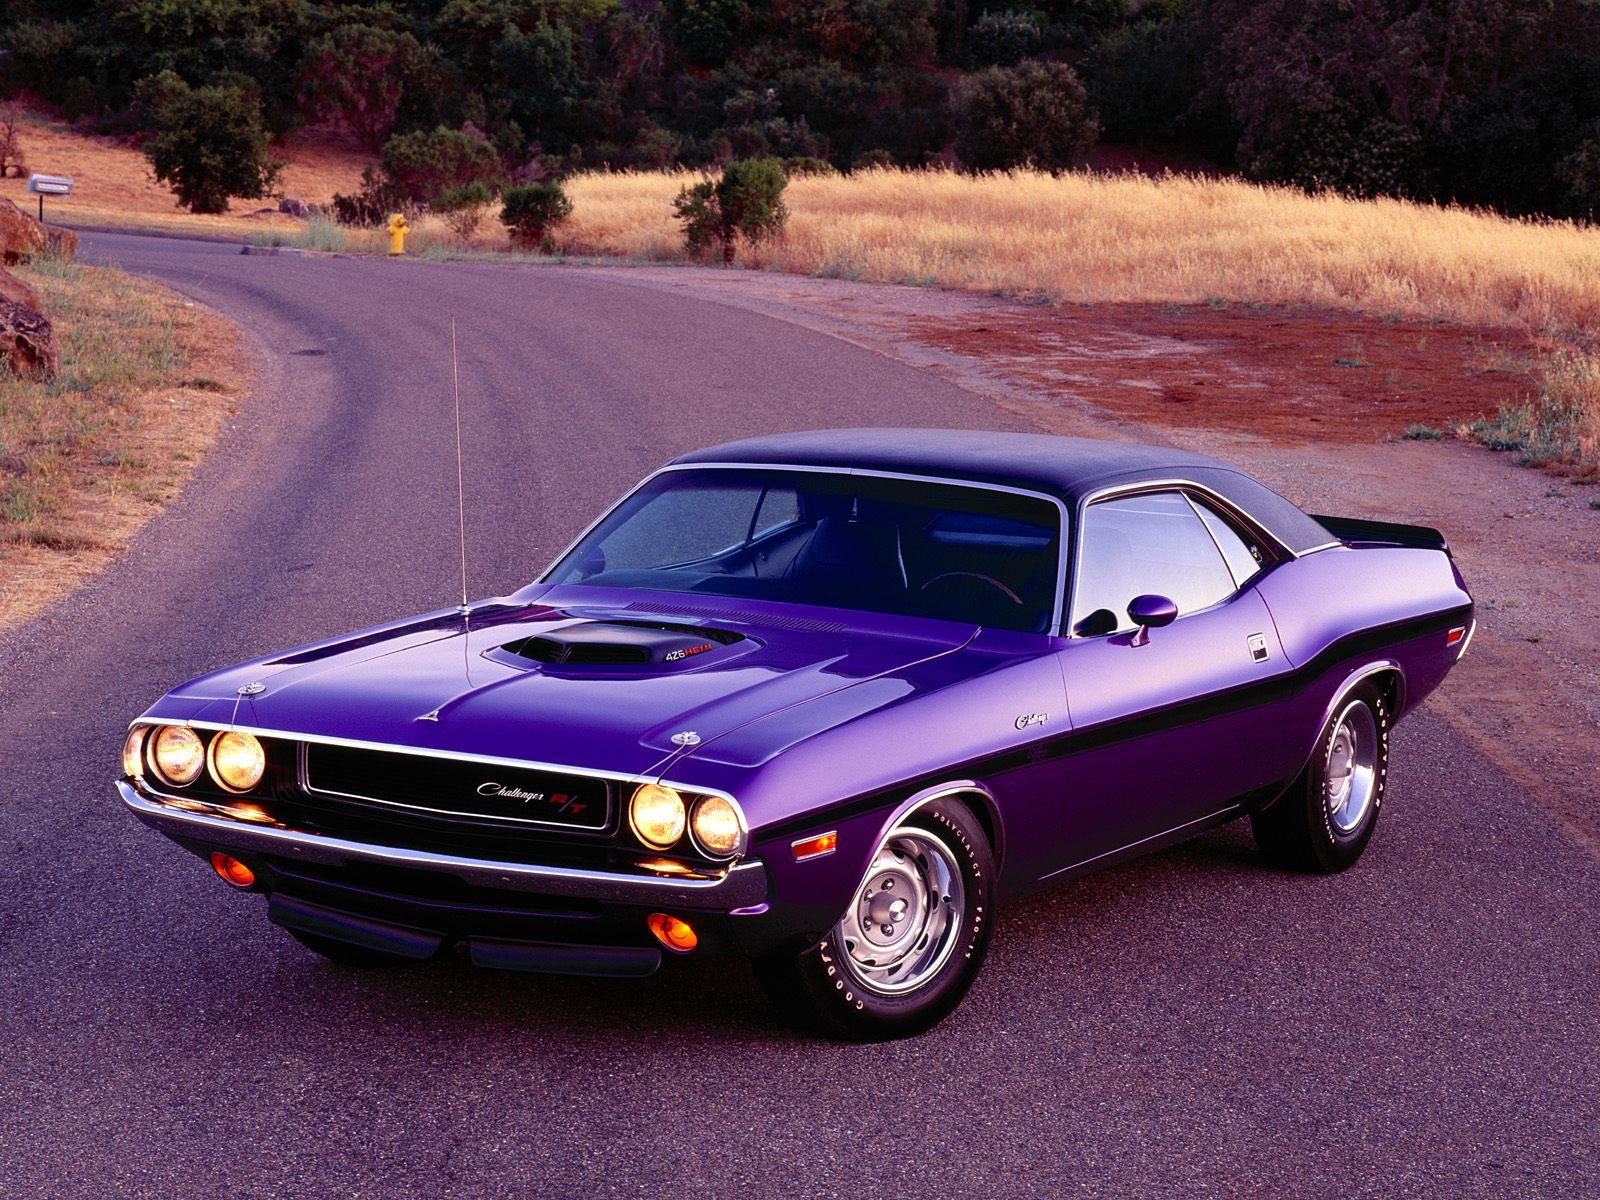 Dodge Challenger 1970 Wallpaper Dodge Wallpapers Download Free 1970 Dodge Challenger Hemi